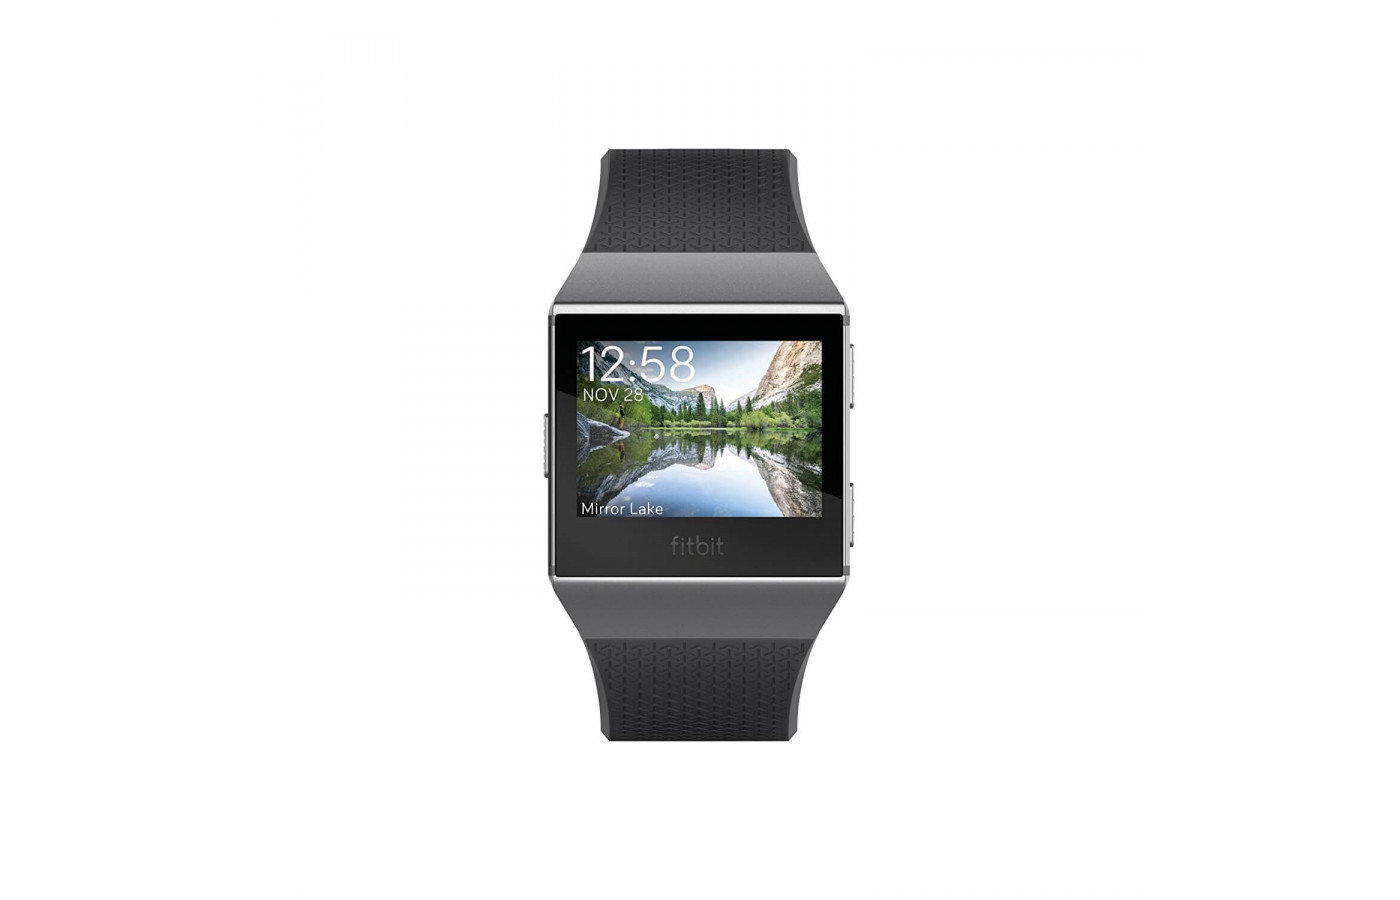 Fitbit Ionic Facing Front smart watch